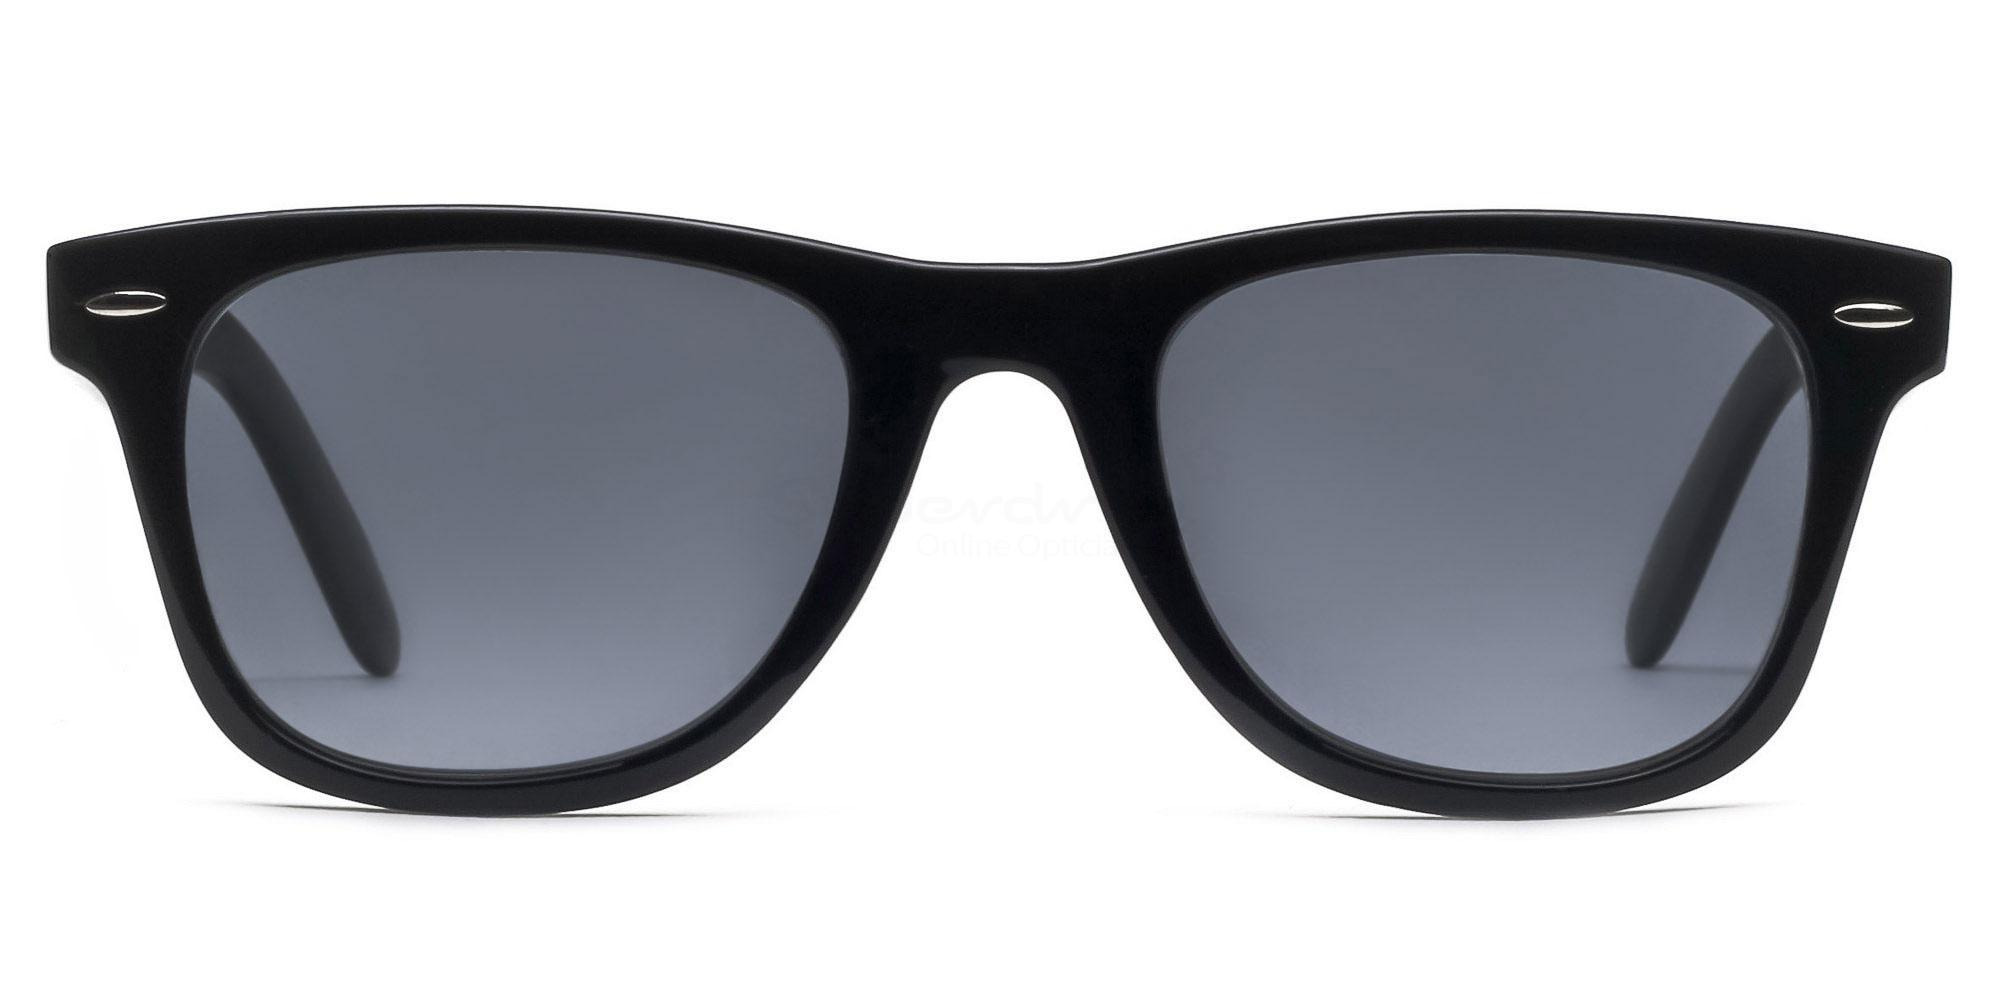 C01 Dark Grey P2429 - Black (Sunglasses) , Indium